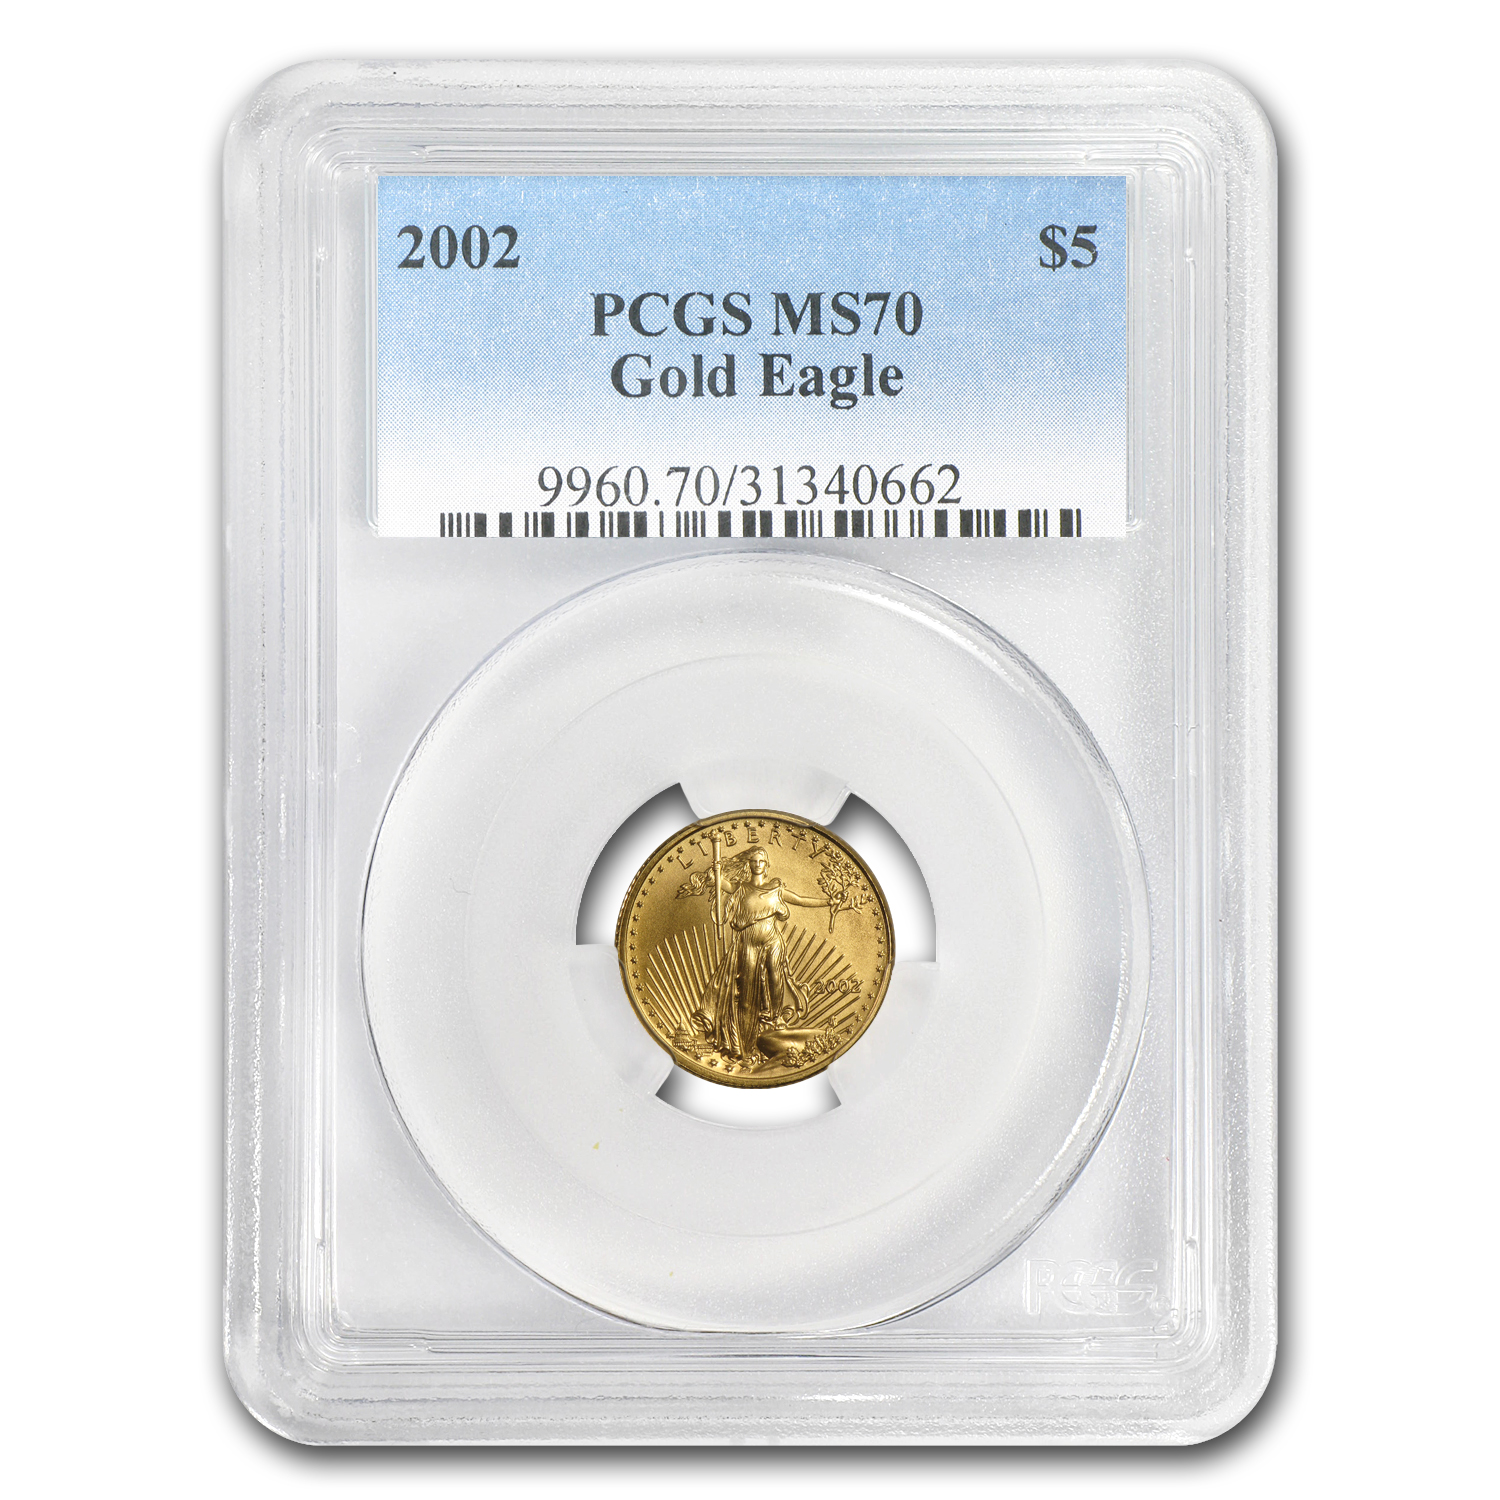 2002 1/10 oz Gold American Eagle MS-70 PCGS